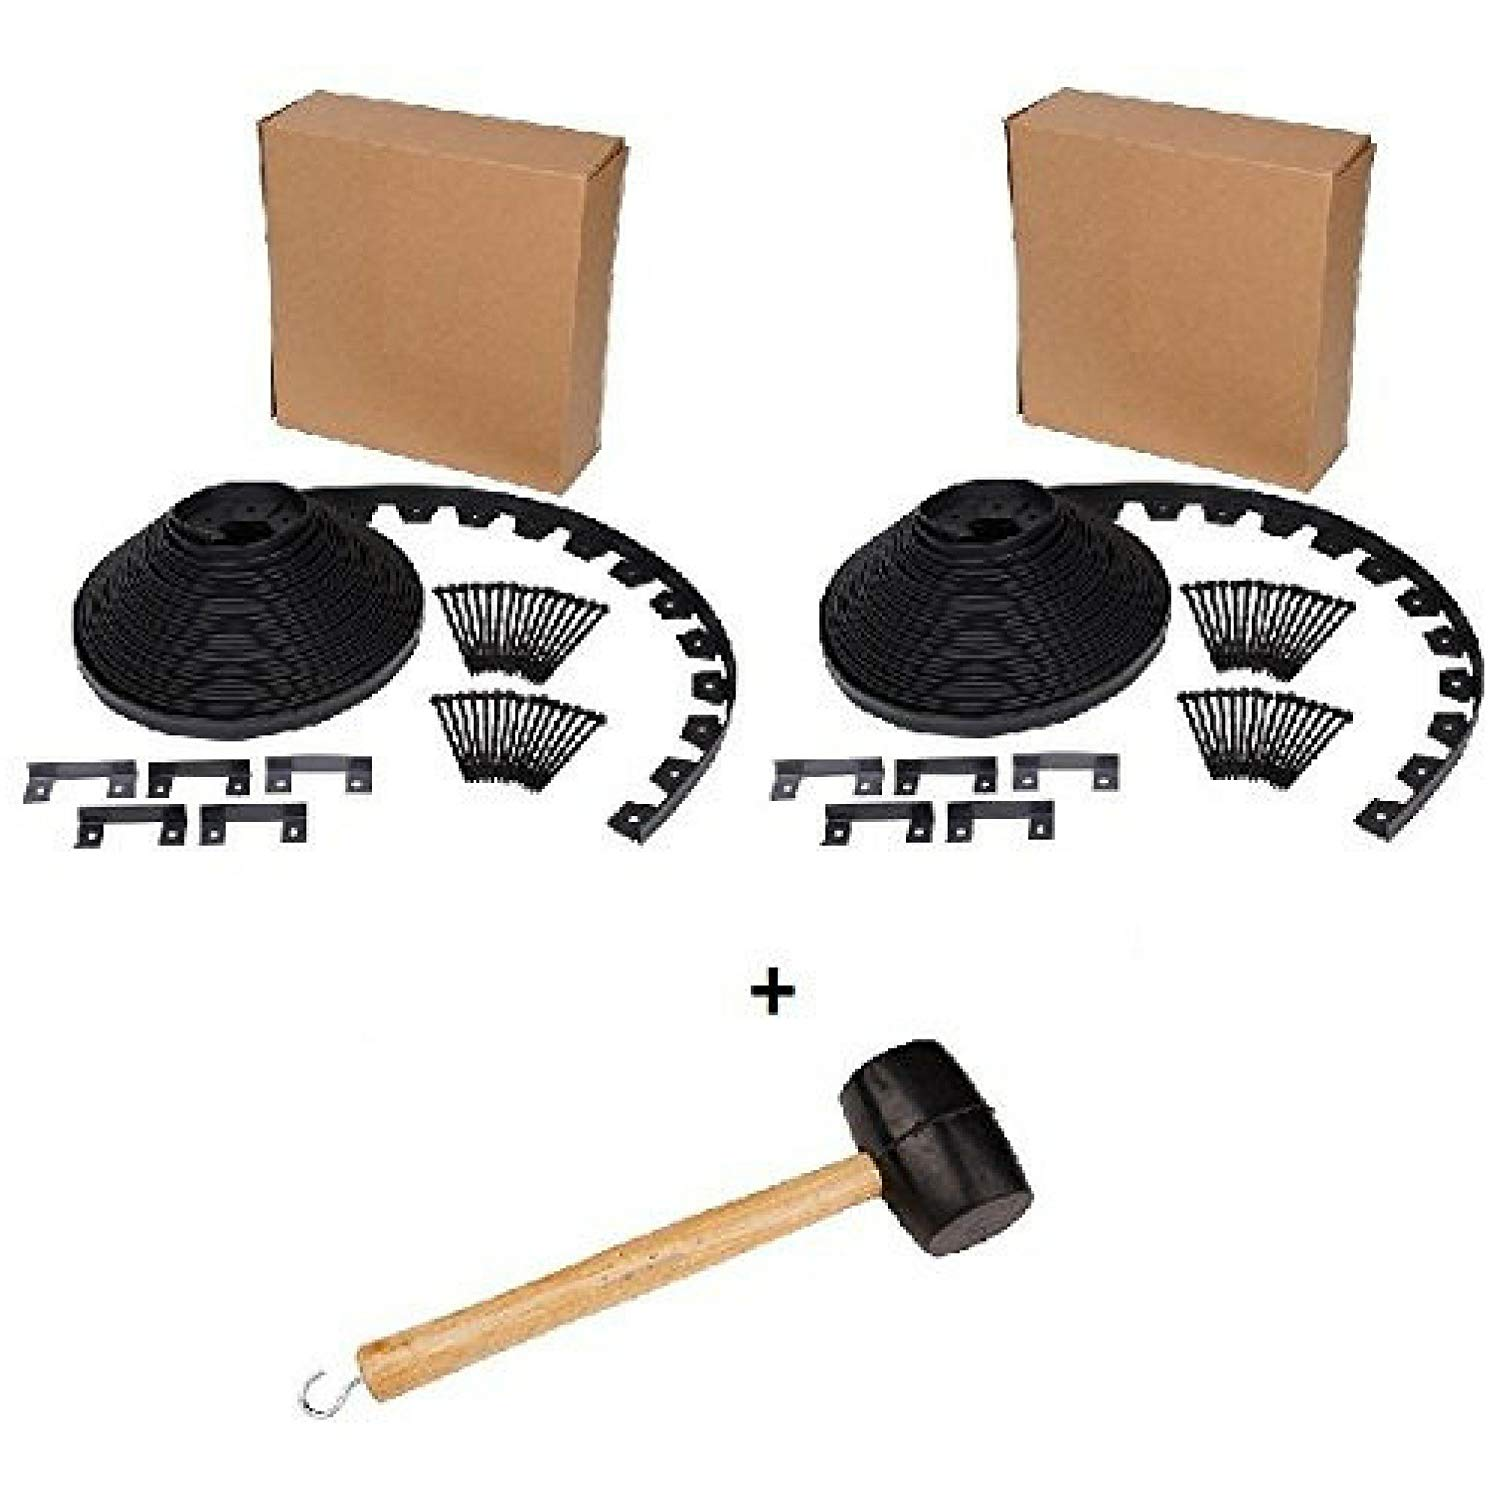 Dimex EasyFlex No-Dig Landscape Edging Project Kit, 100 ft. (PACK OF 2 KIT) with Rubber Mallet